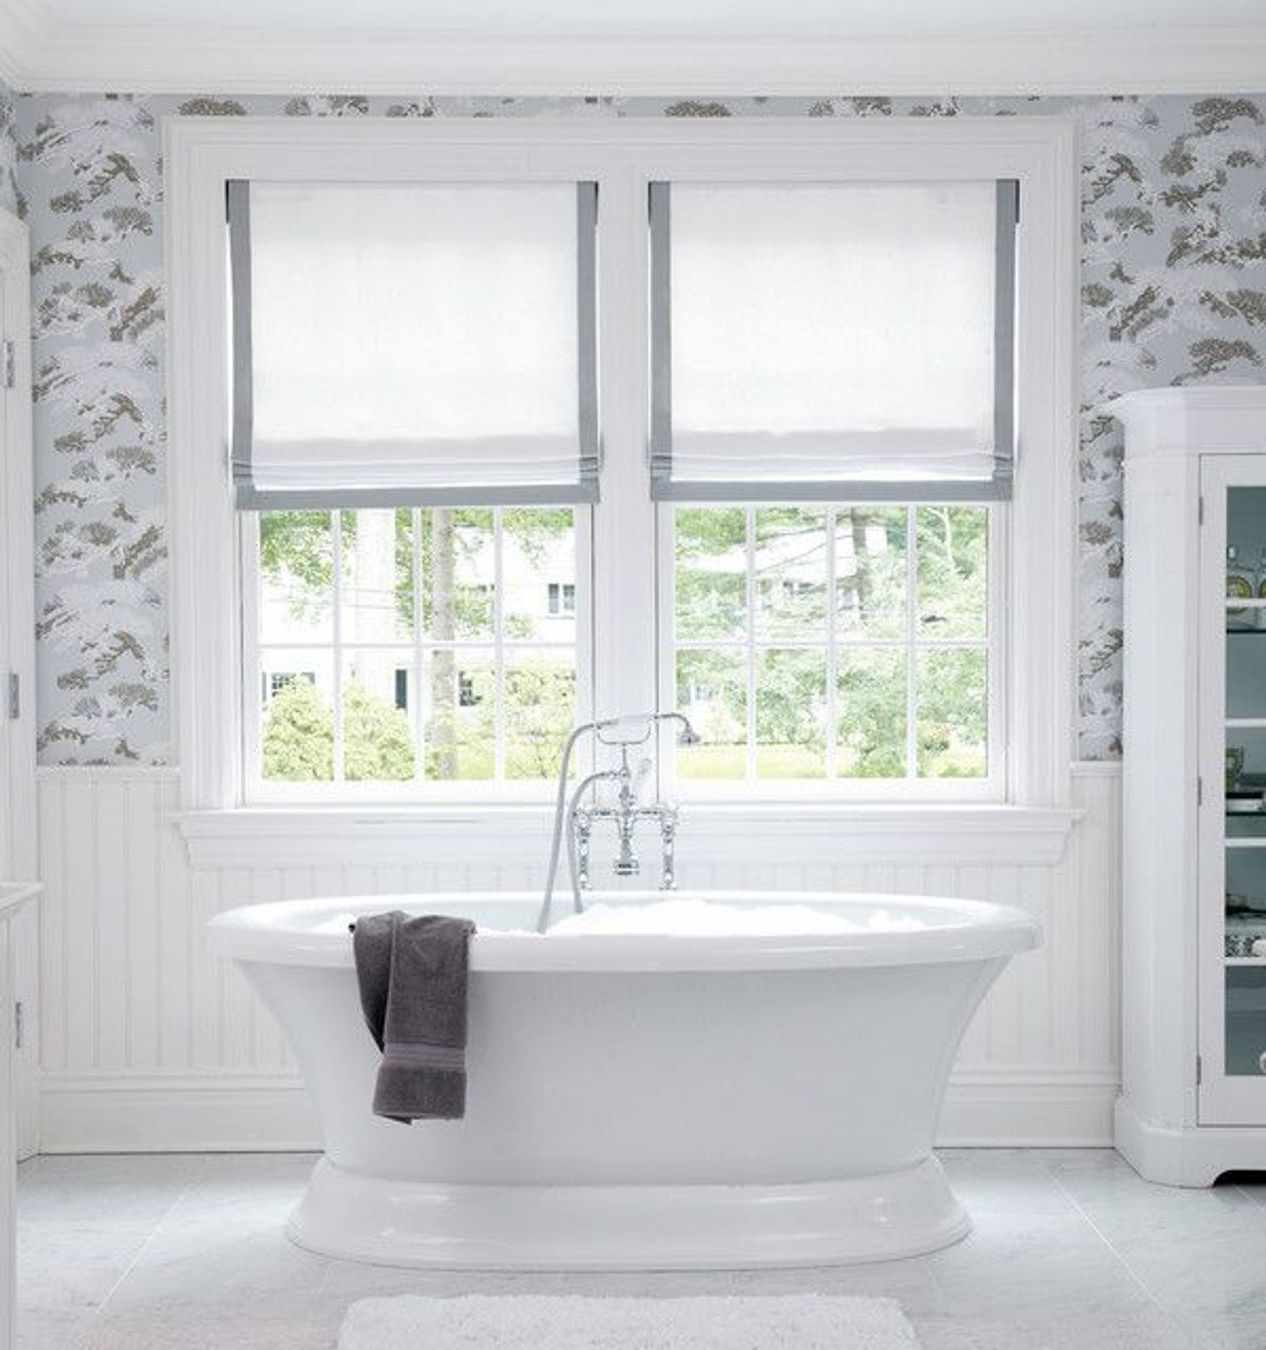 Bathroom Window Covering 9 Bathroom Window Treatment Ideas Deco Window Fashions